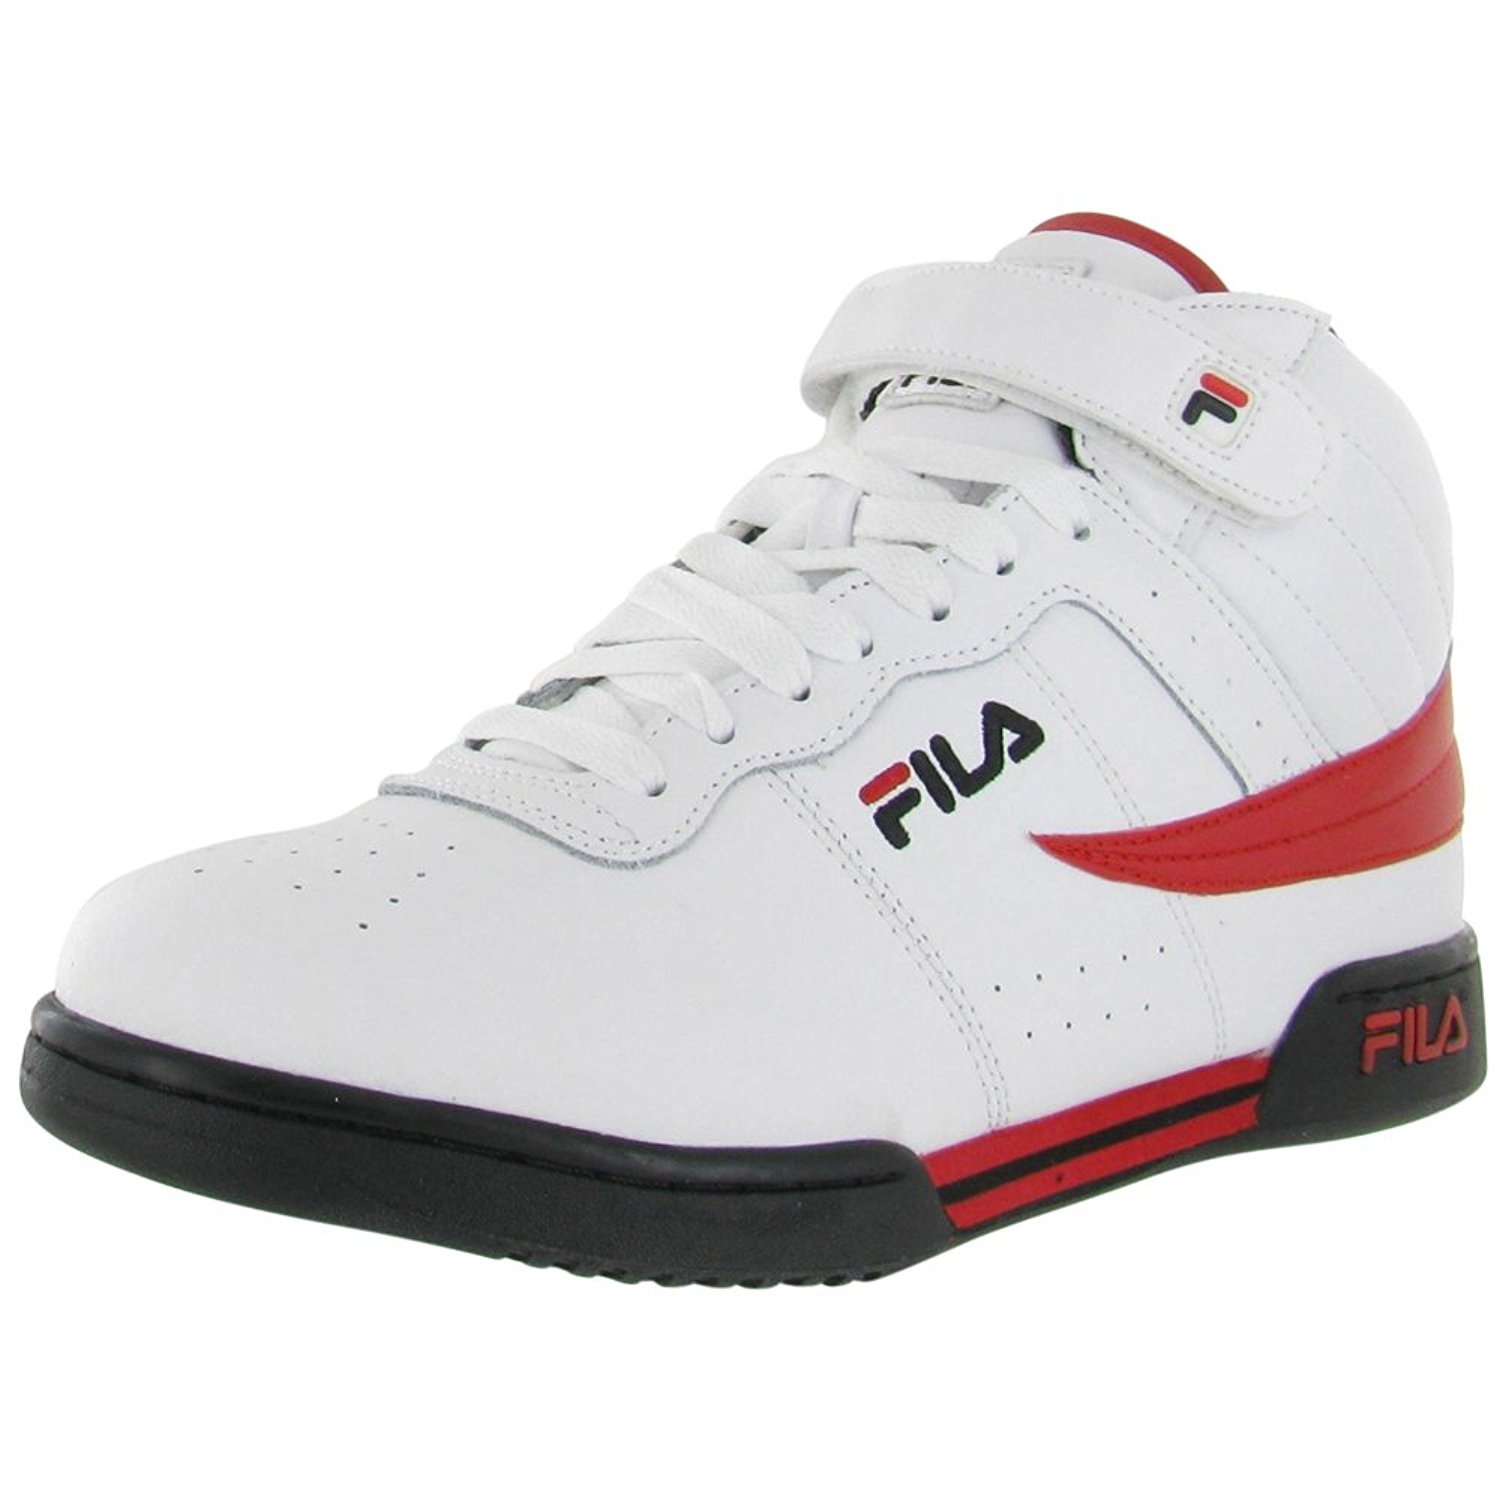 1e24722abef6 Get Quotations · Fila F-13 Men s Shoes Basketball Sneakers